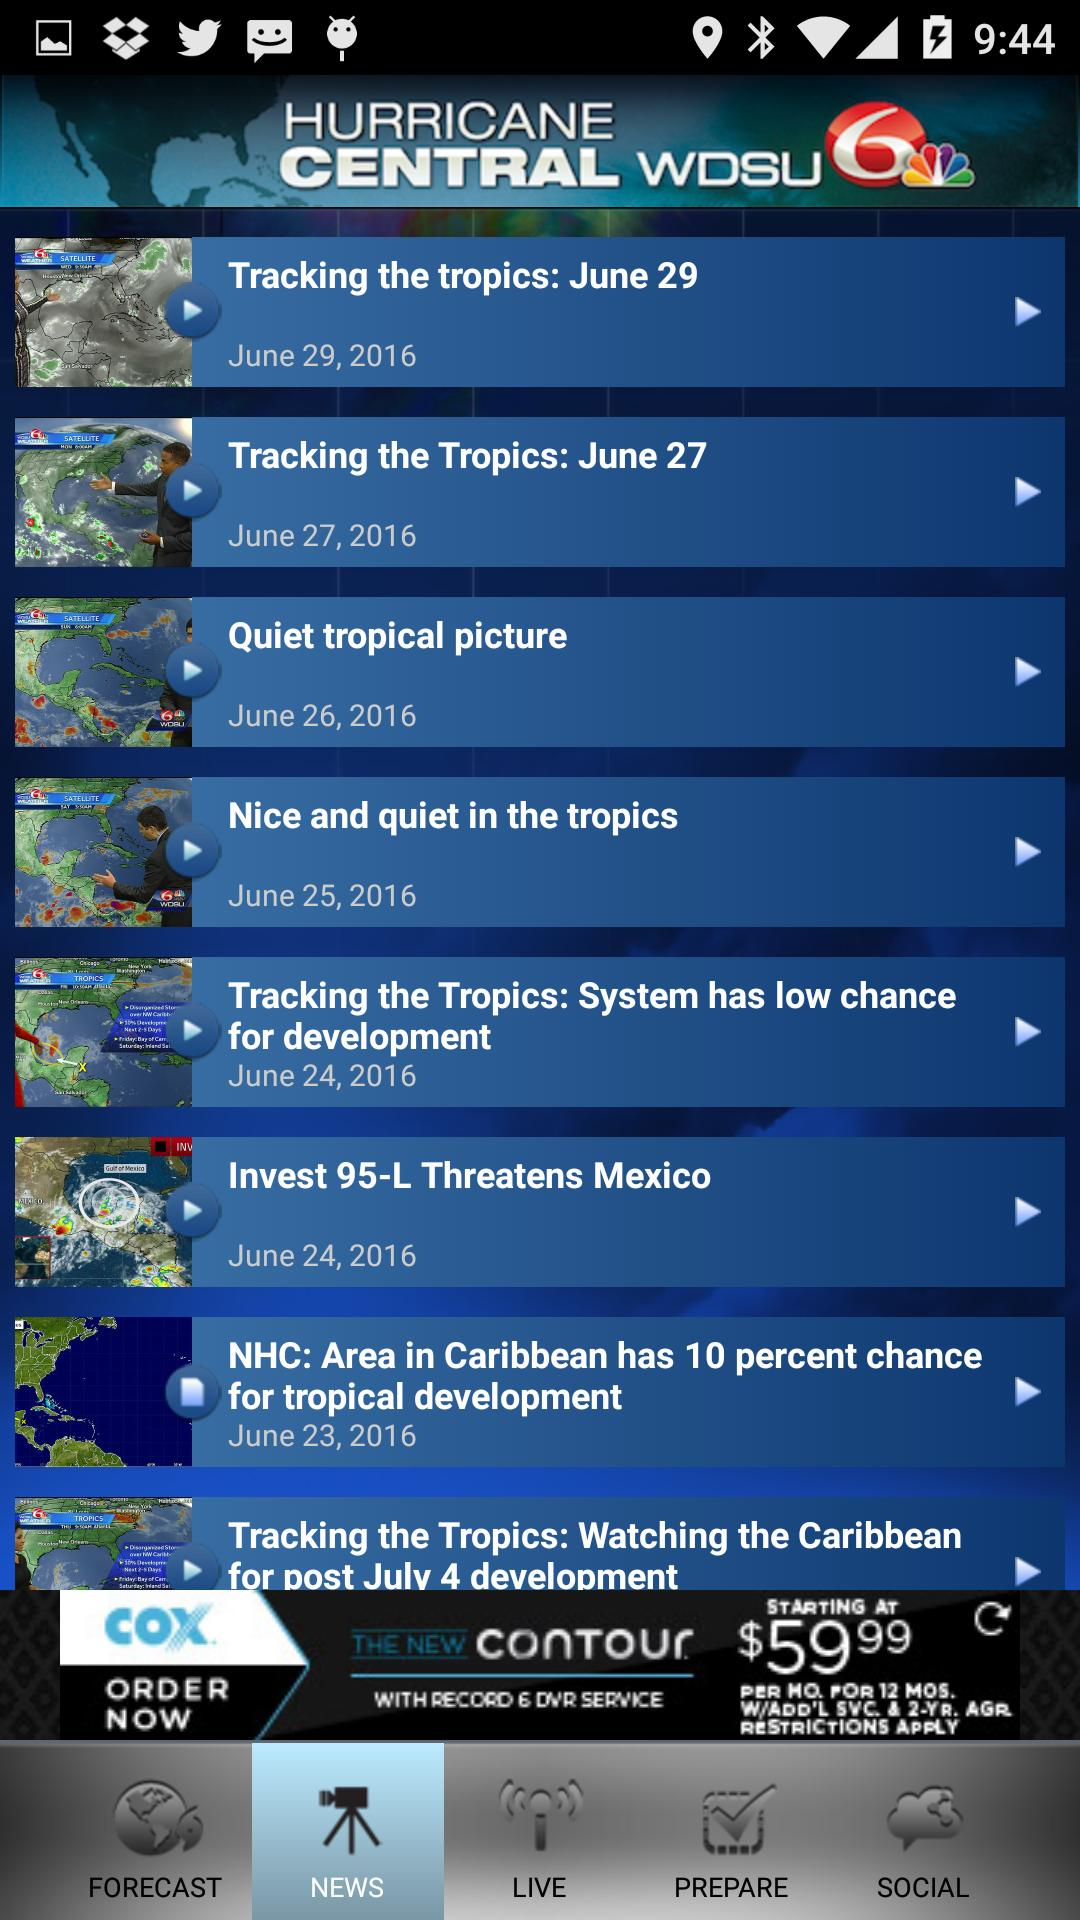 WDSU Hurricane Central for Android - APK Download